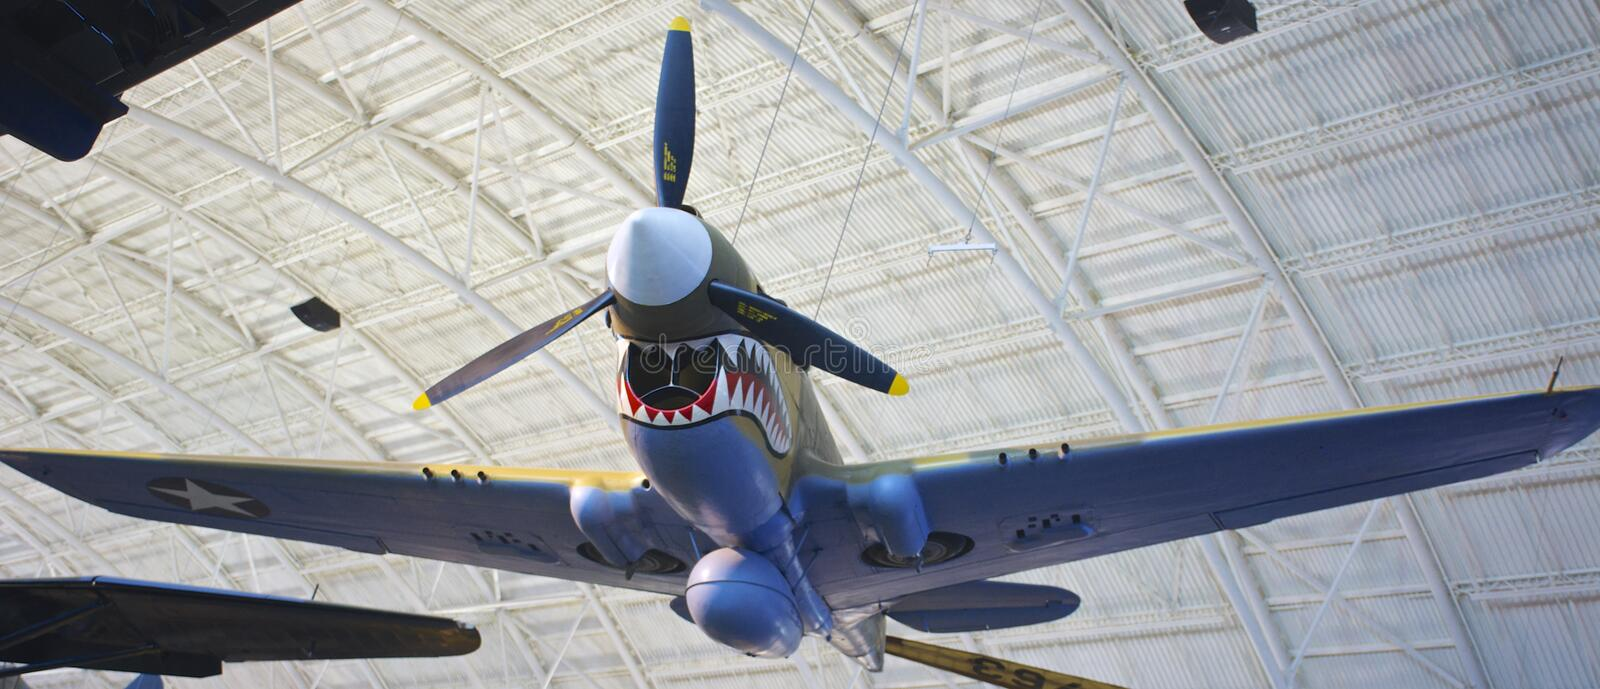 P-40E Kitty Hawk foto de stock